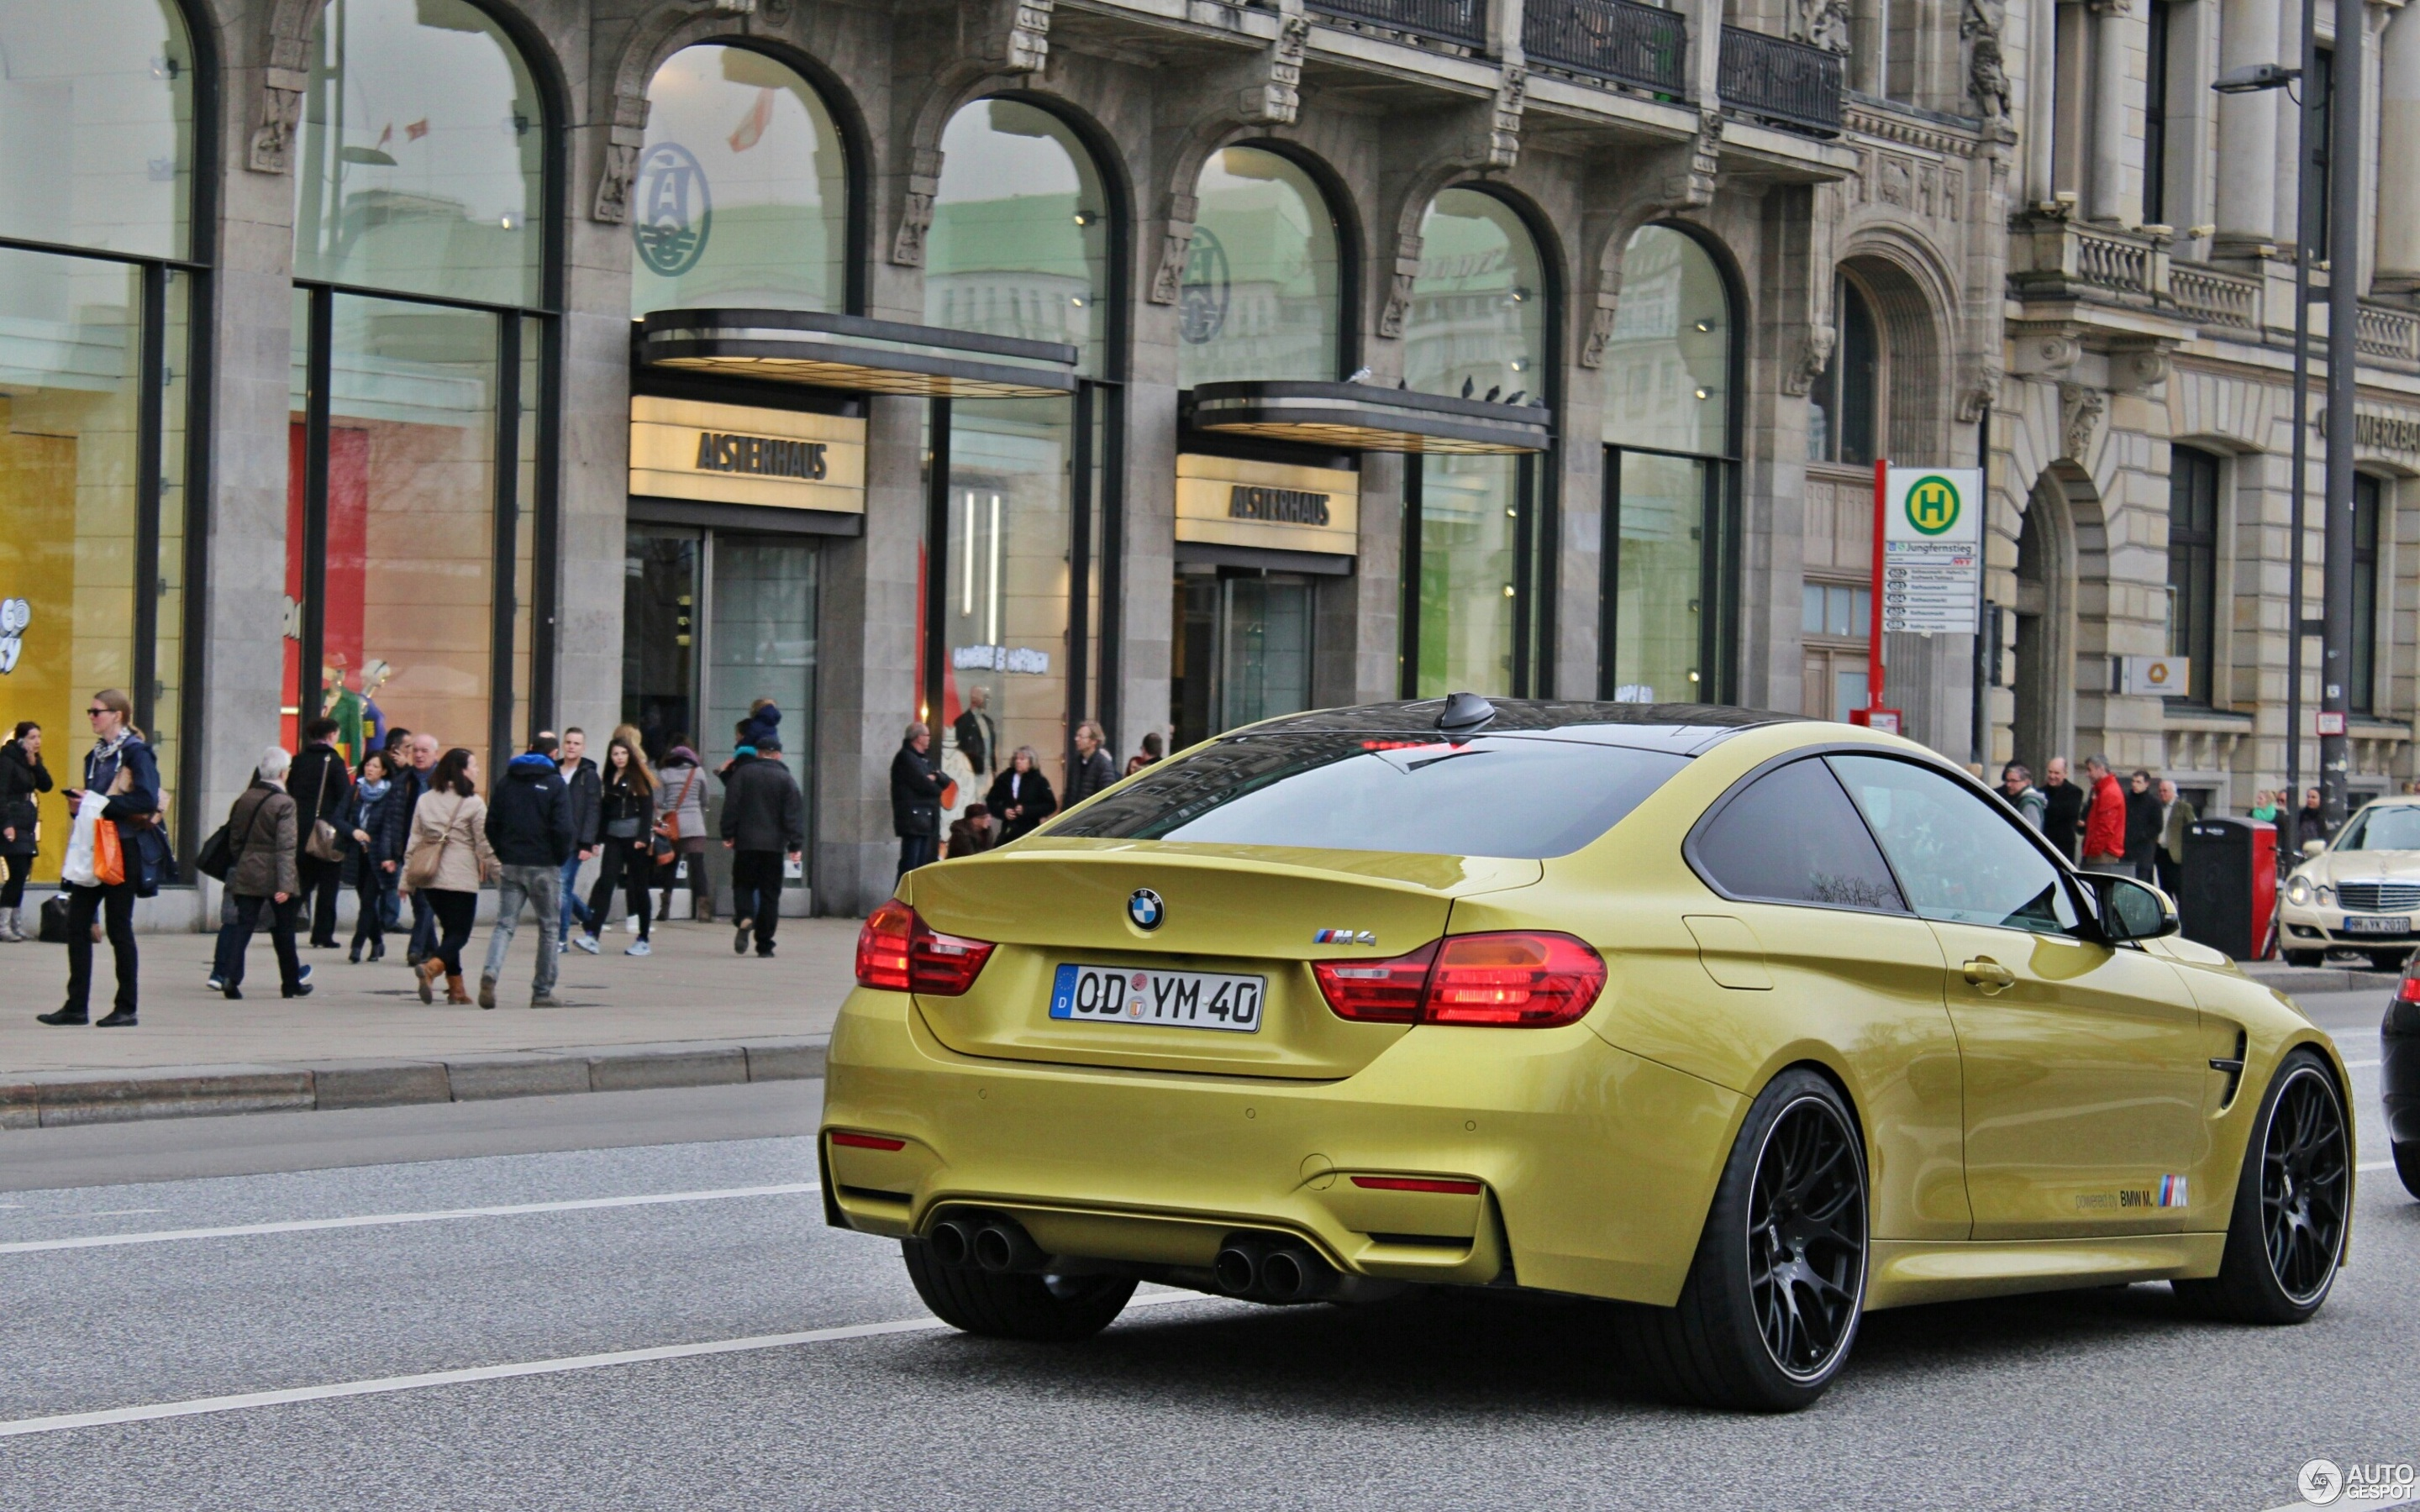 BMW M4 F82 Coupé 28 M rz 2015 Autogespot